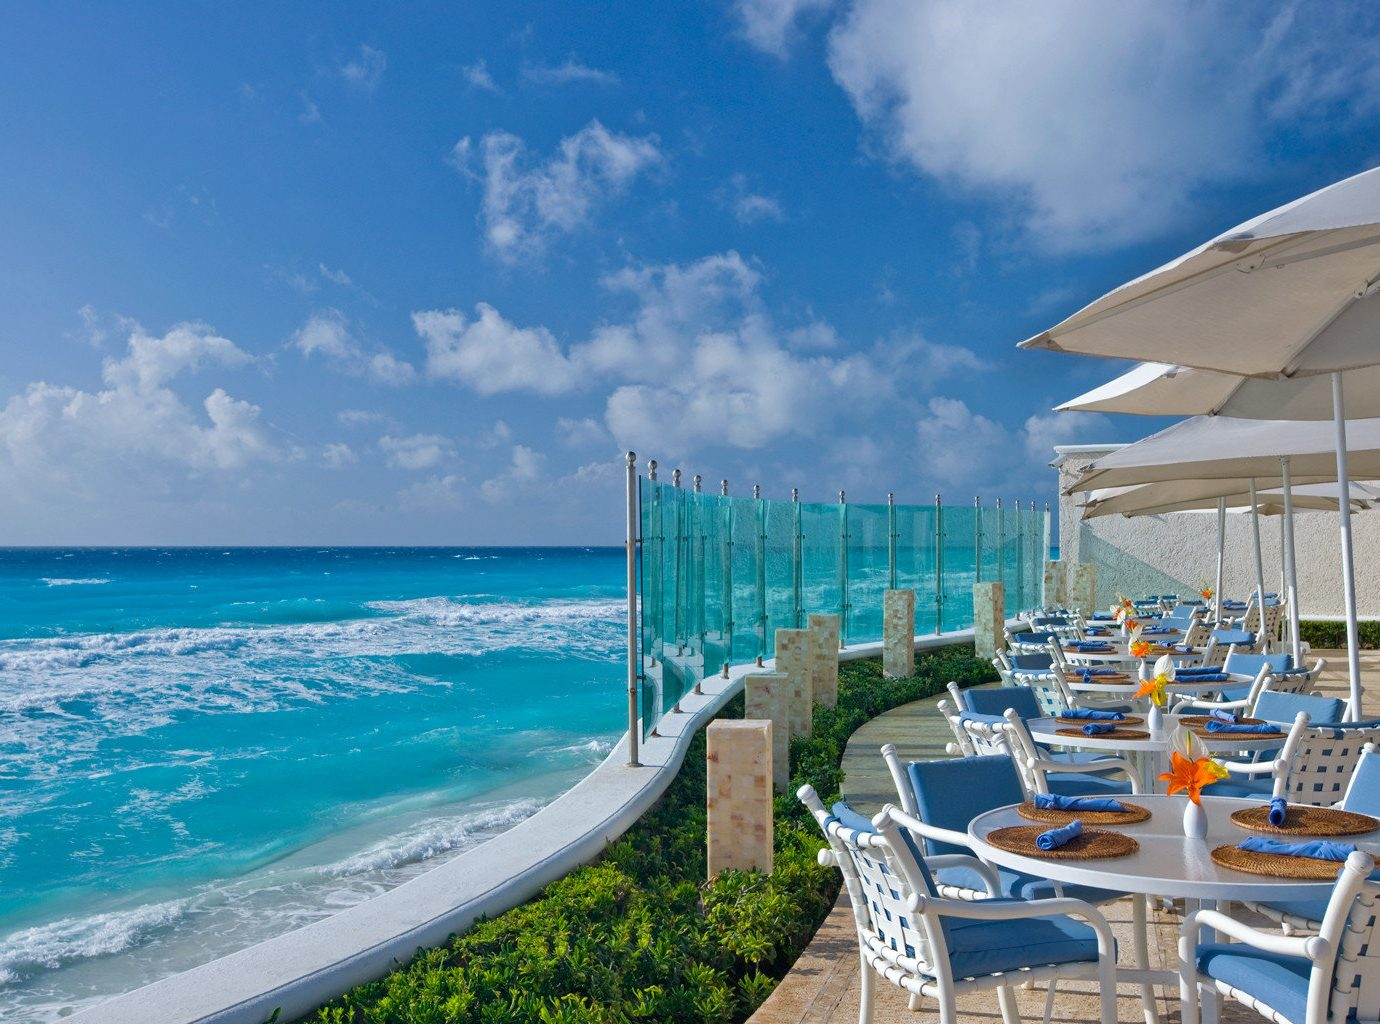 sky chair umbrella water lawn Ocean Sea Beach caribbean Nature shore horizon Coast Resort vehicle cape marina dock Deck swimming day sandy